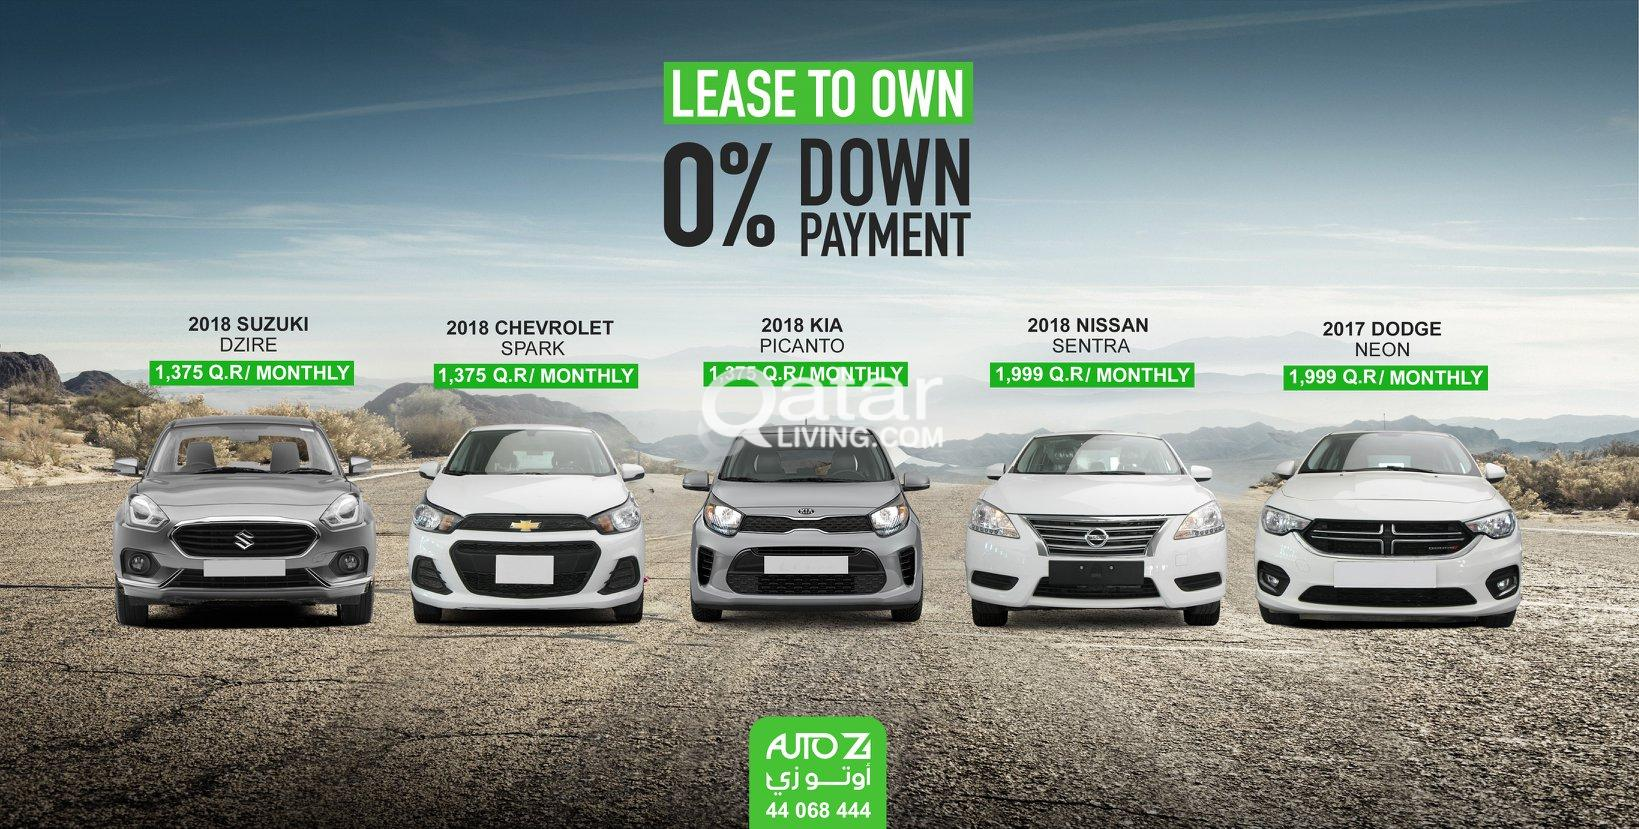 Special Lease To Own offers from Auto Z